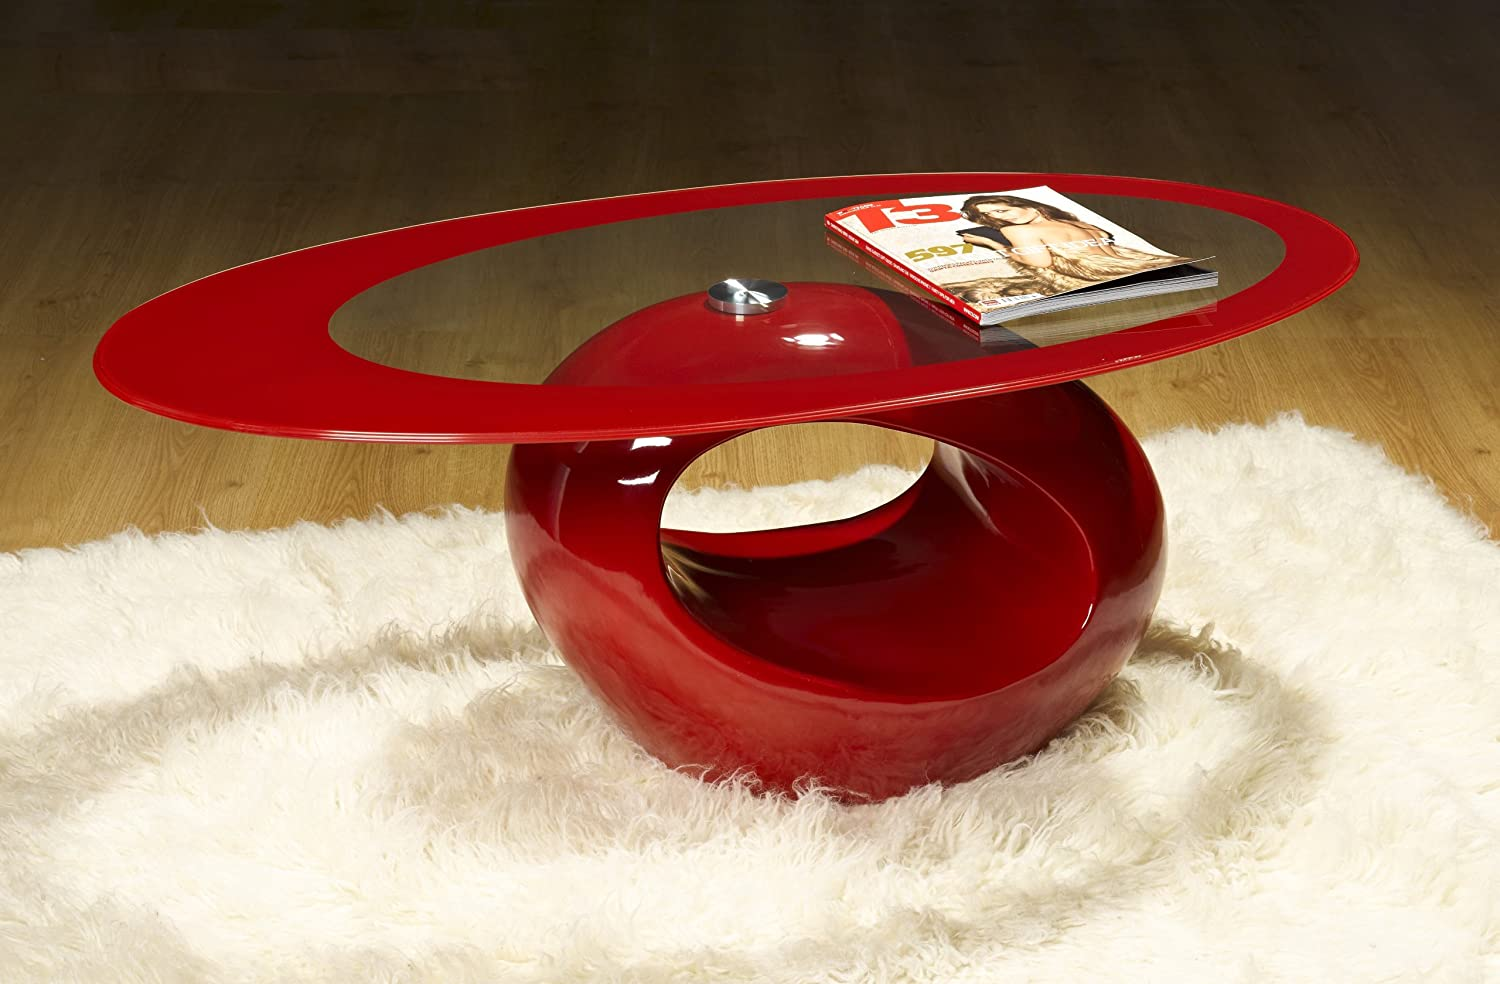 Designer Oval Coffee Table RED Amazon Kitchen & Home